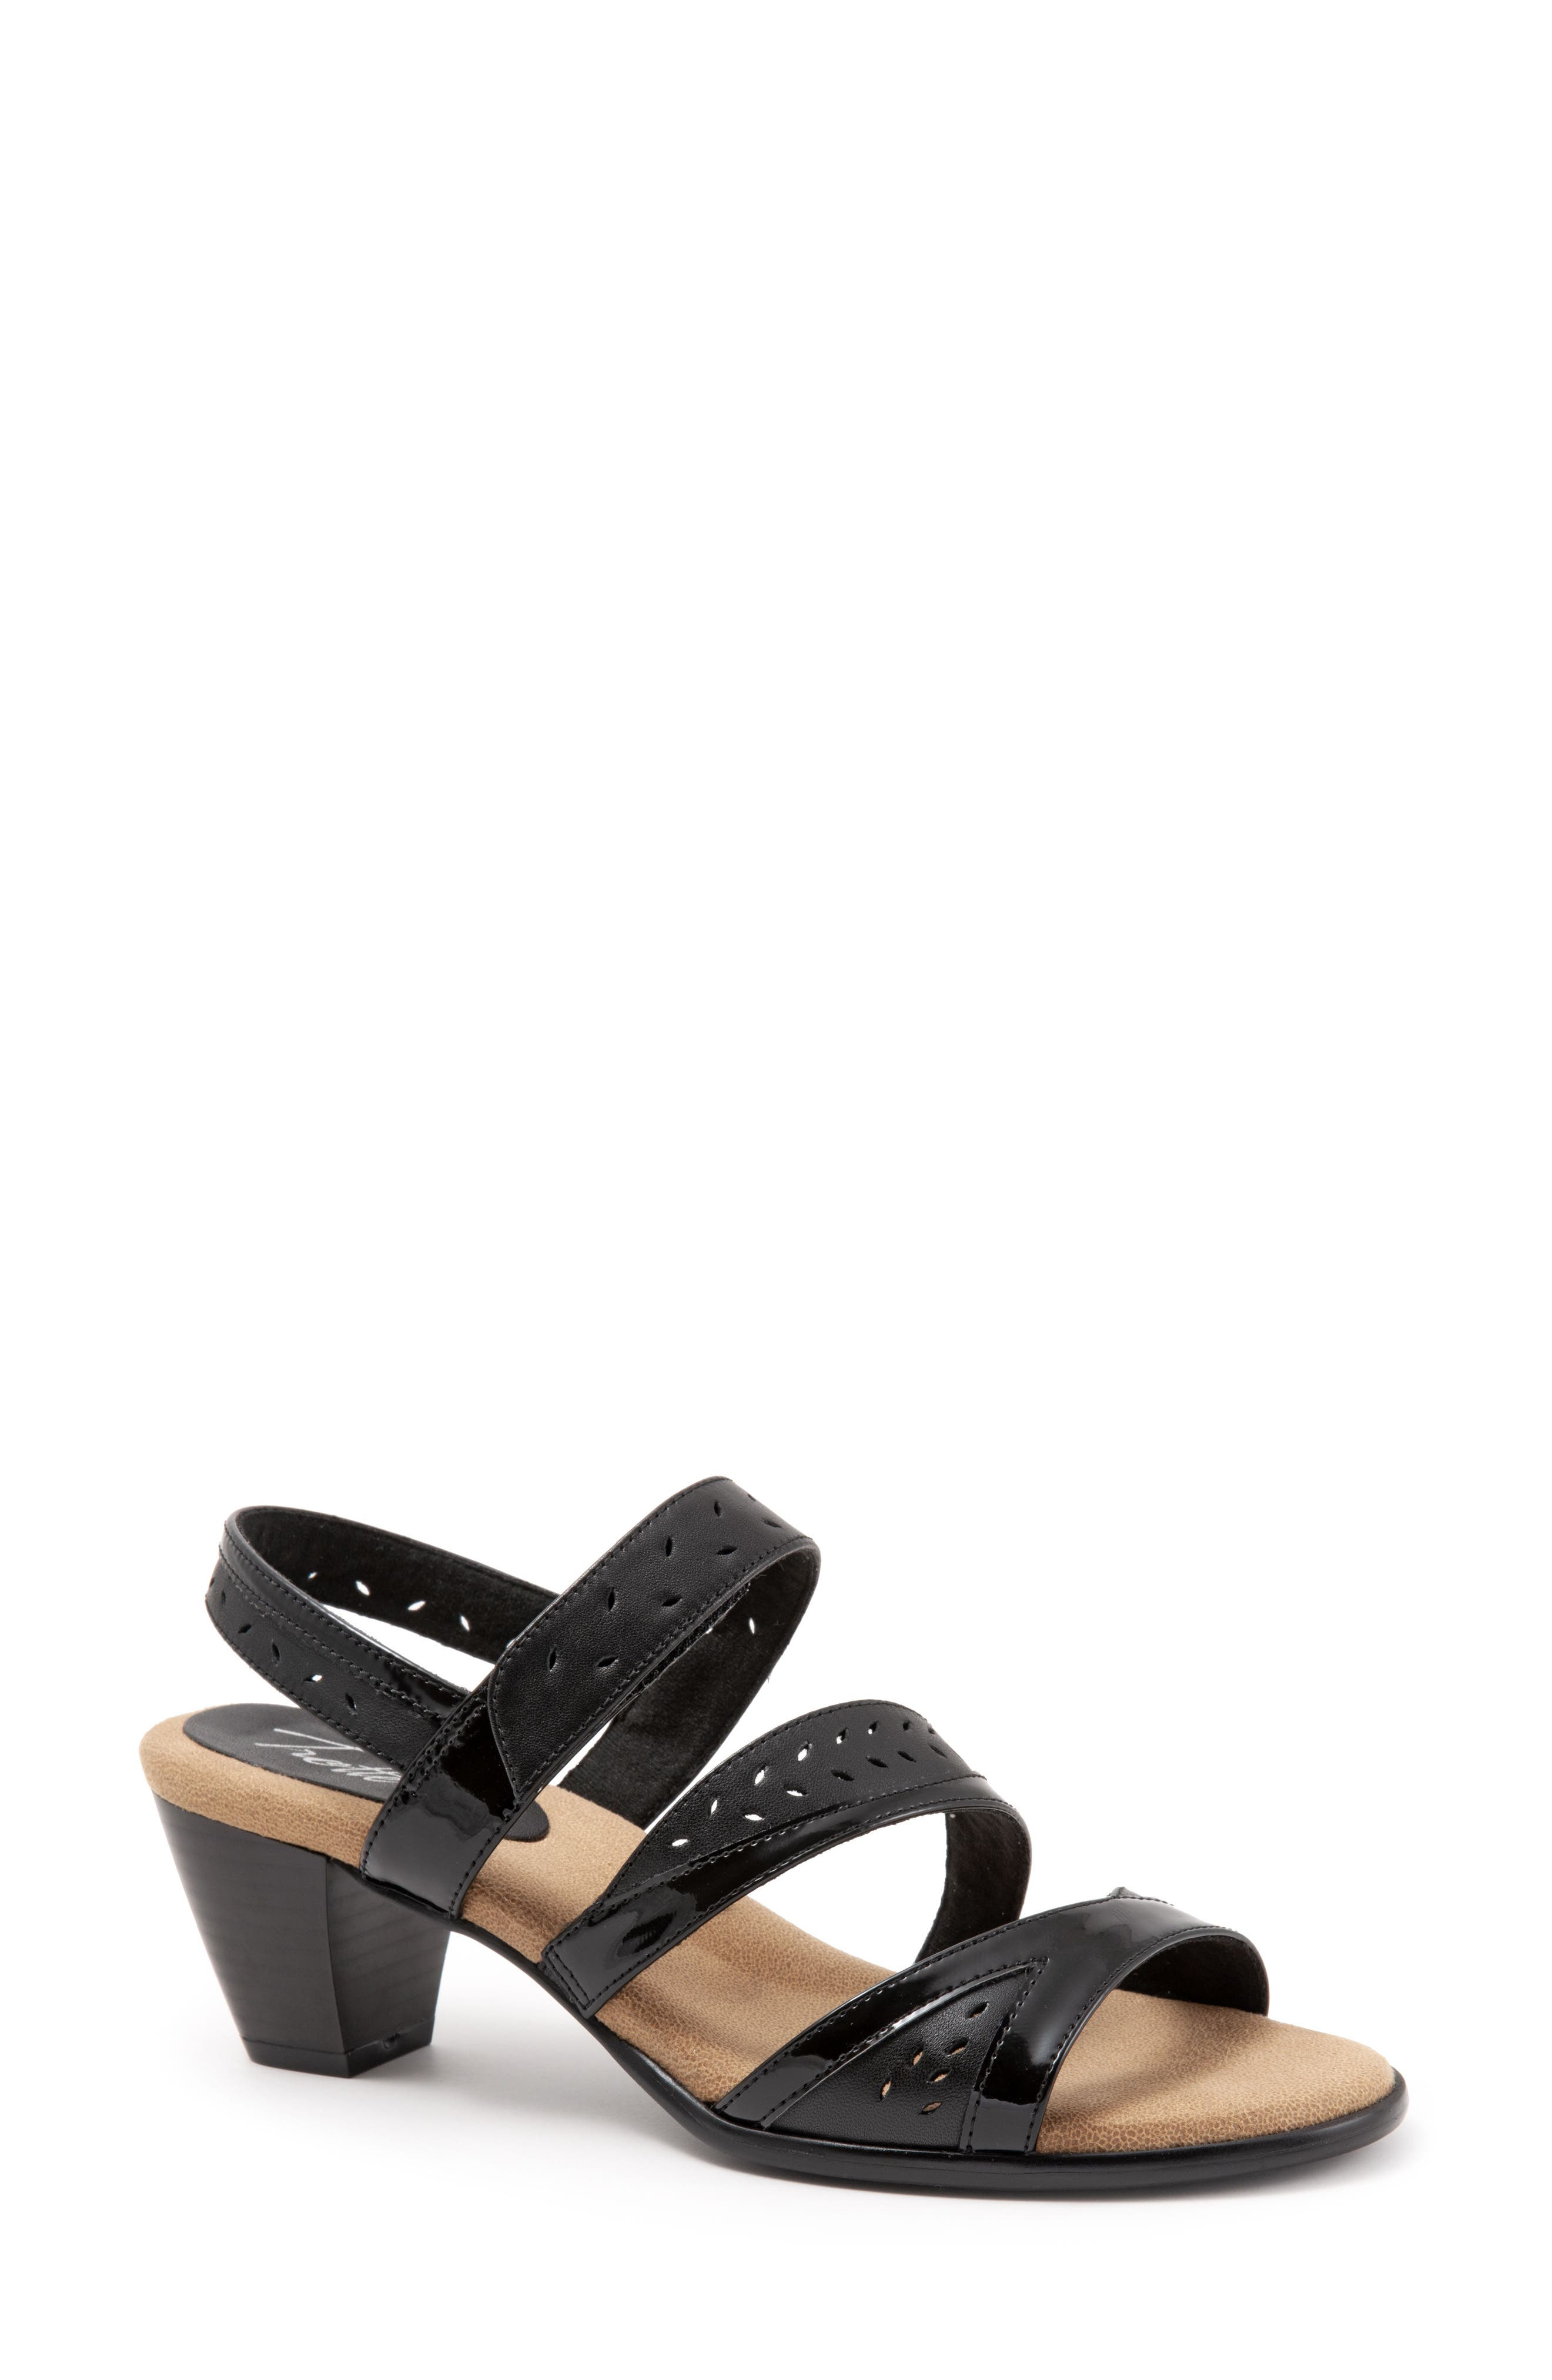 TROTTERS Marvie Perforated Strappy Sandal, Main, color, BLACK LEATHER